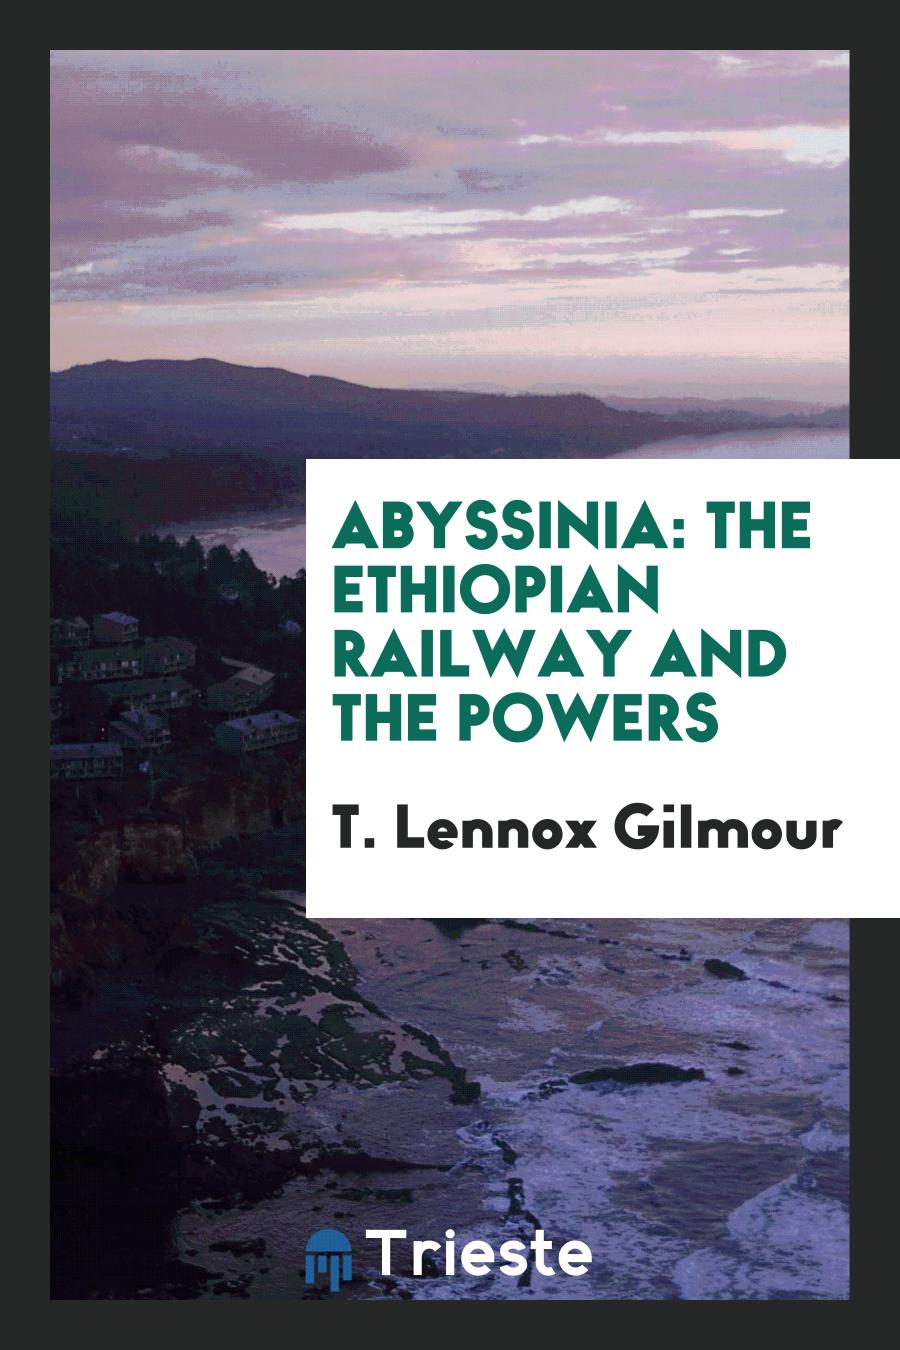 Abyssinia: The Ethiopian Railway and the Powers